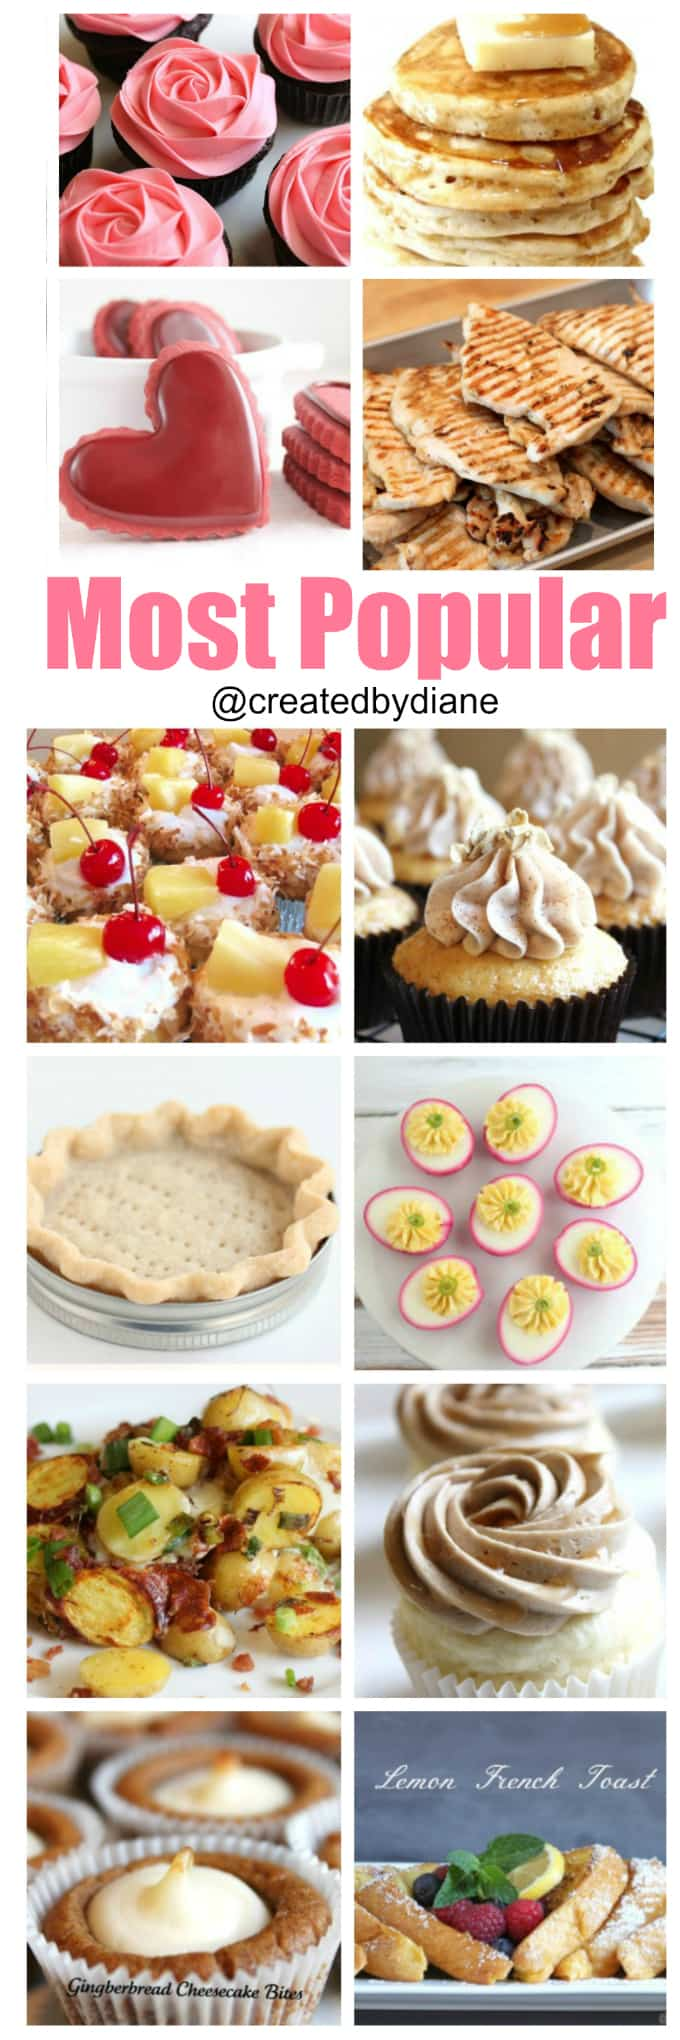 most popular @createdbydiane